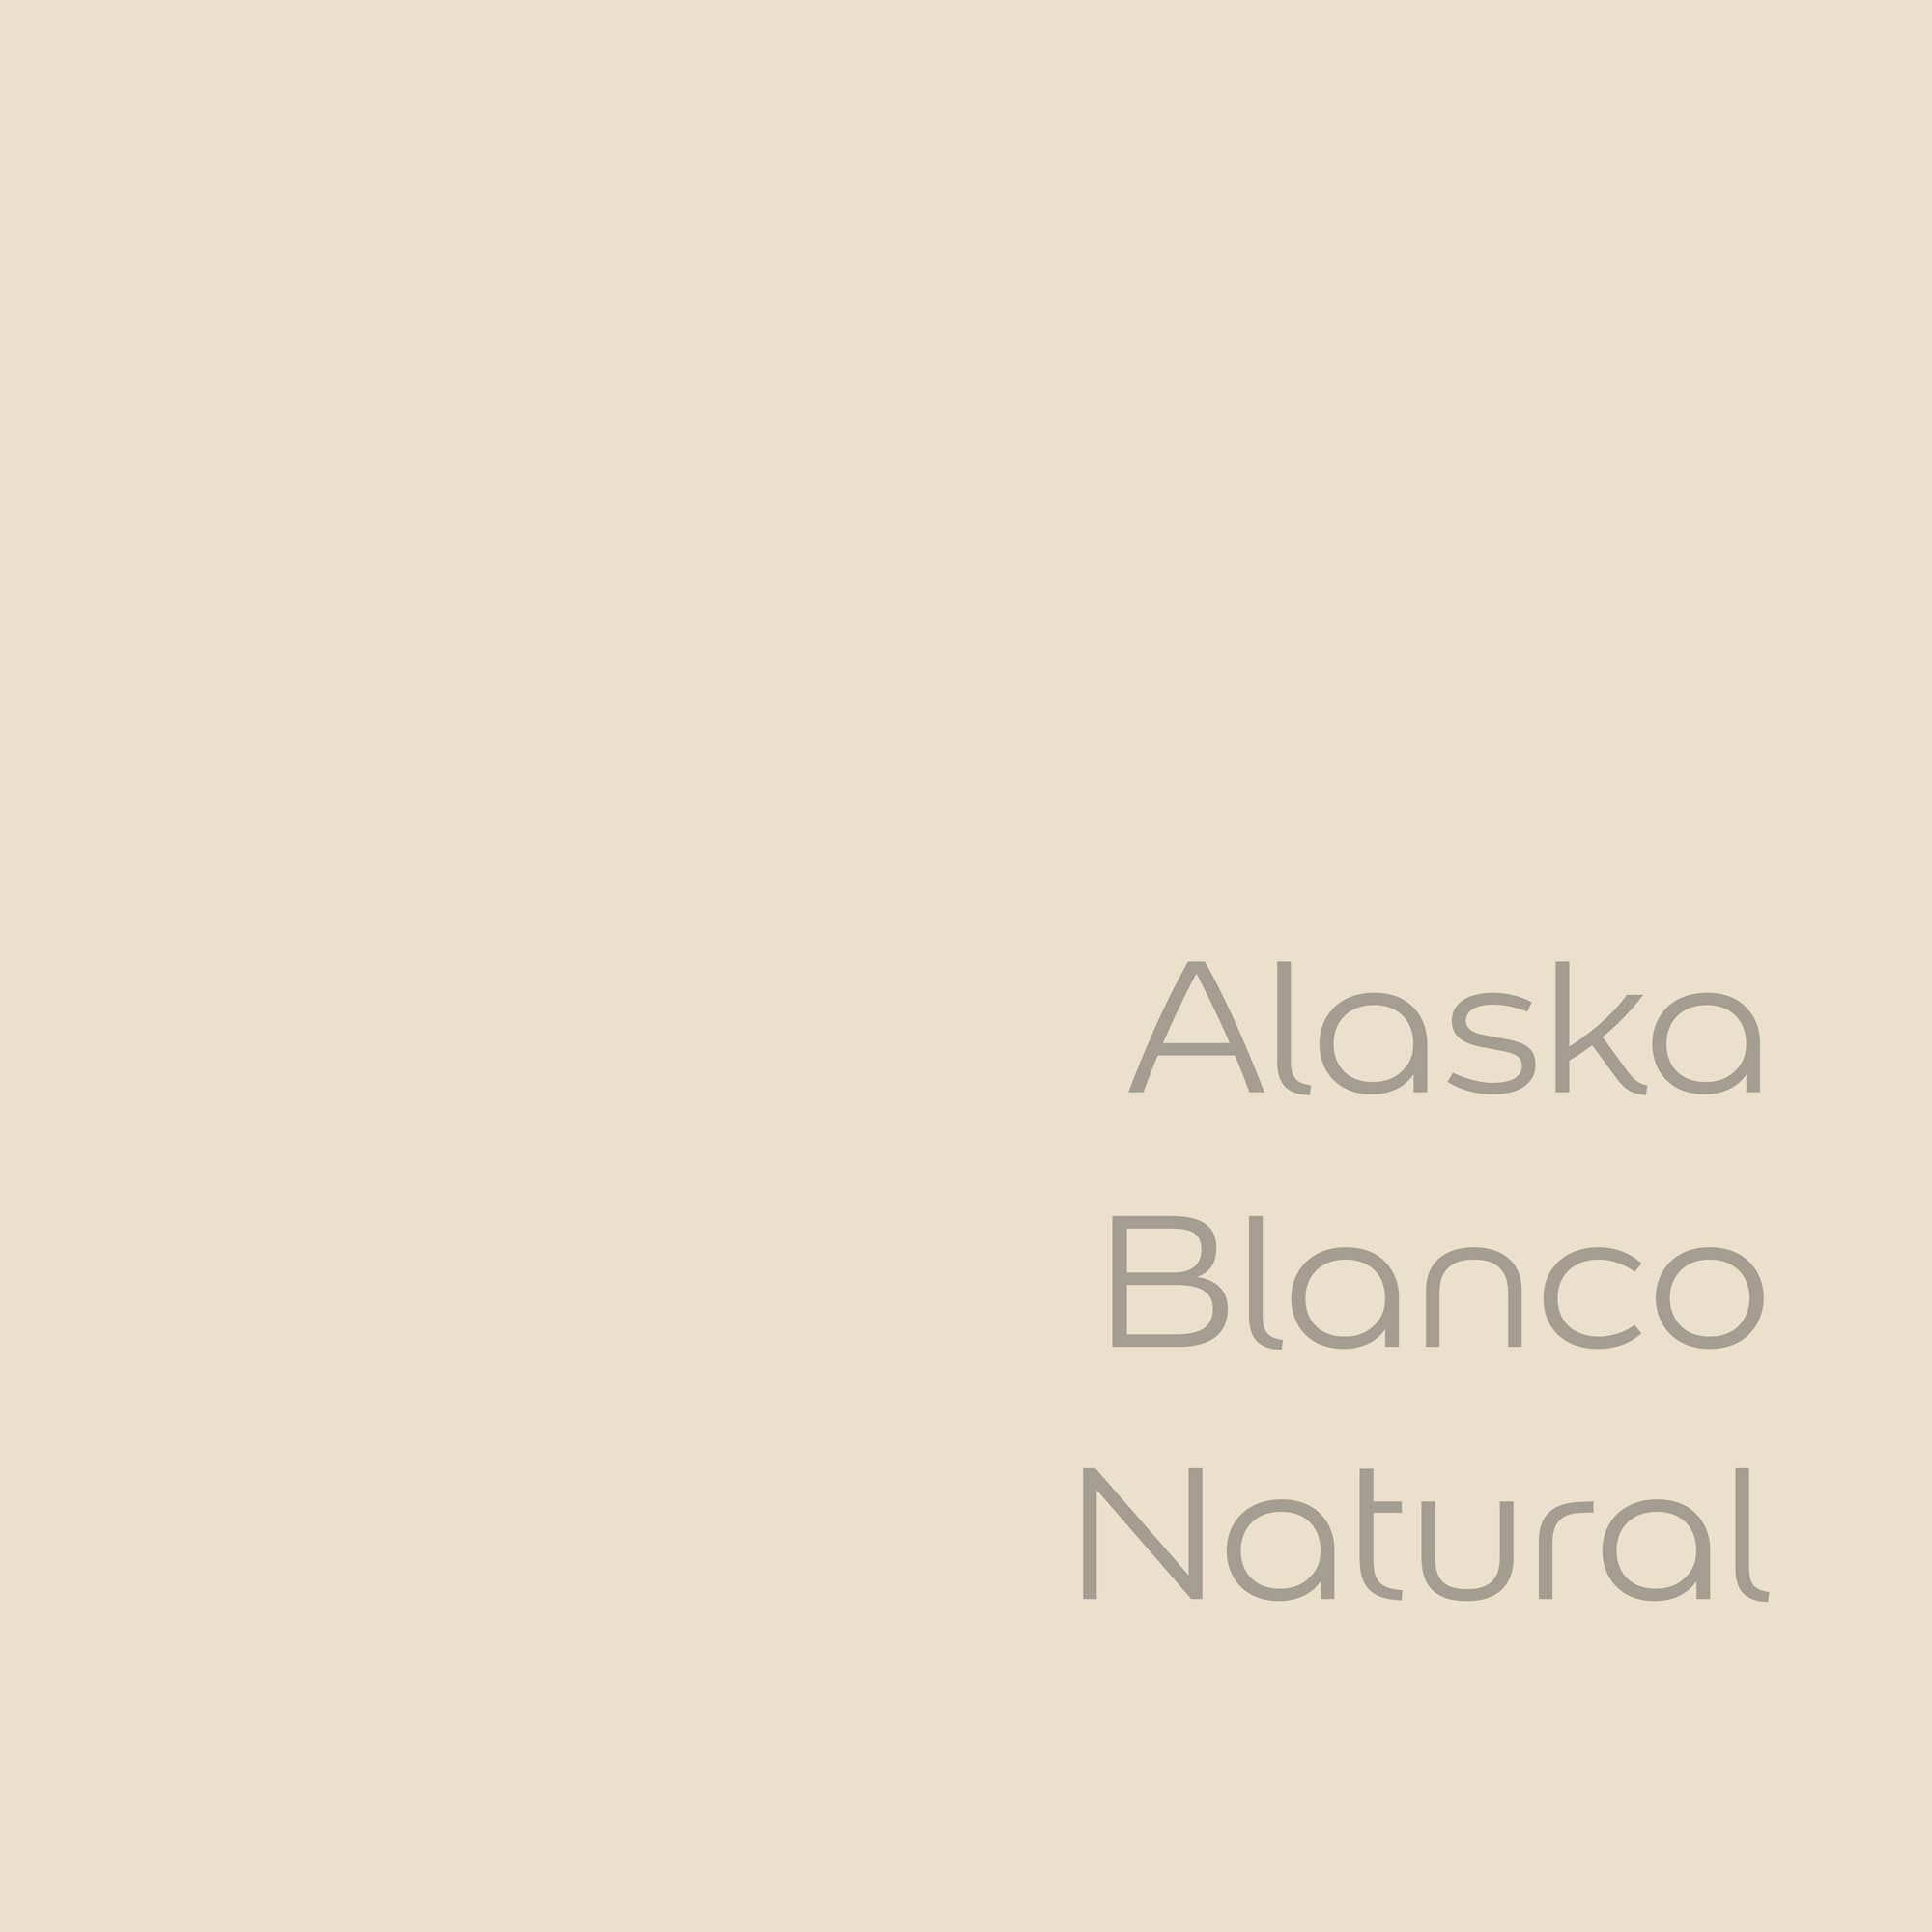 Tester de color de pintura bruguer cdm alaska blanco natural color